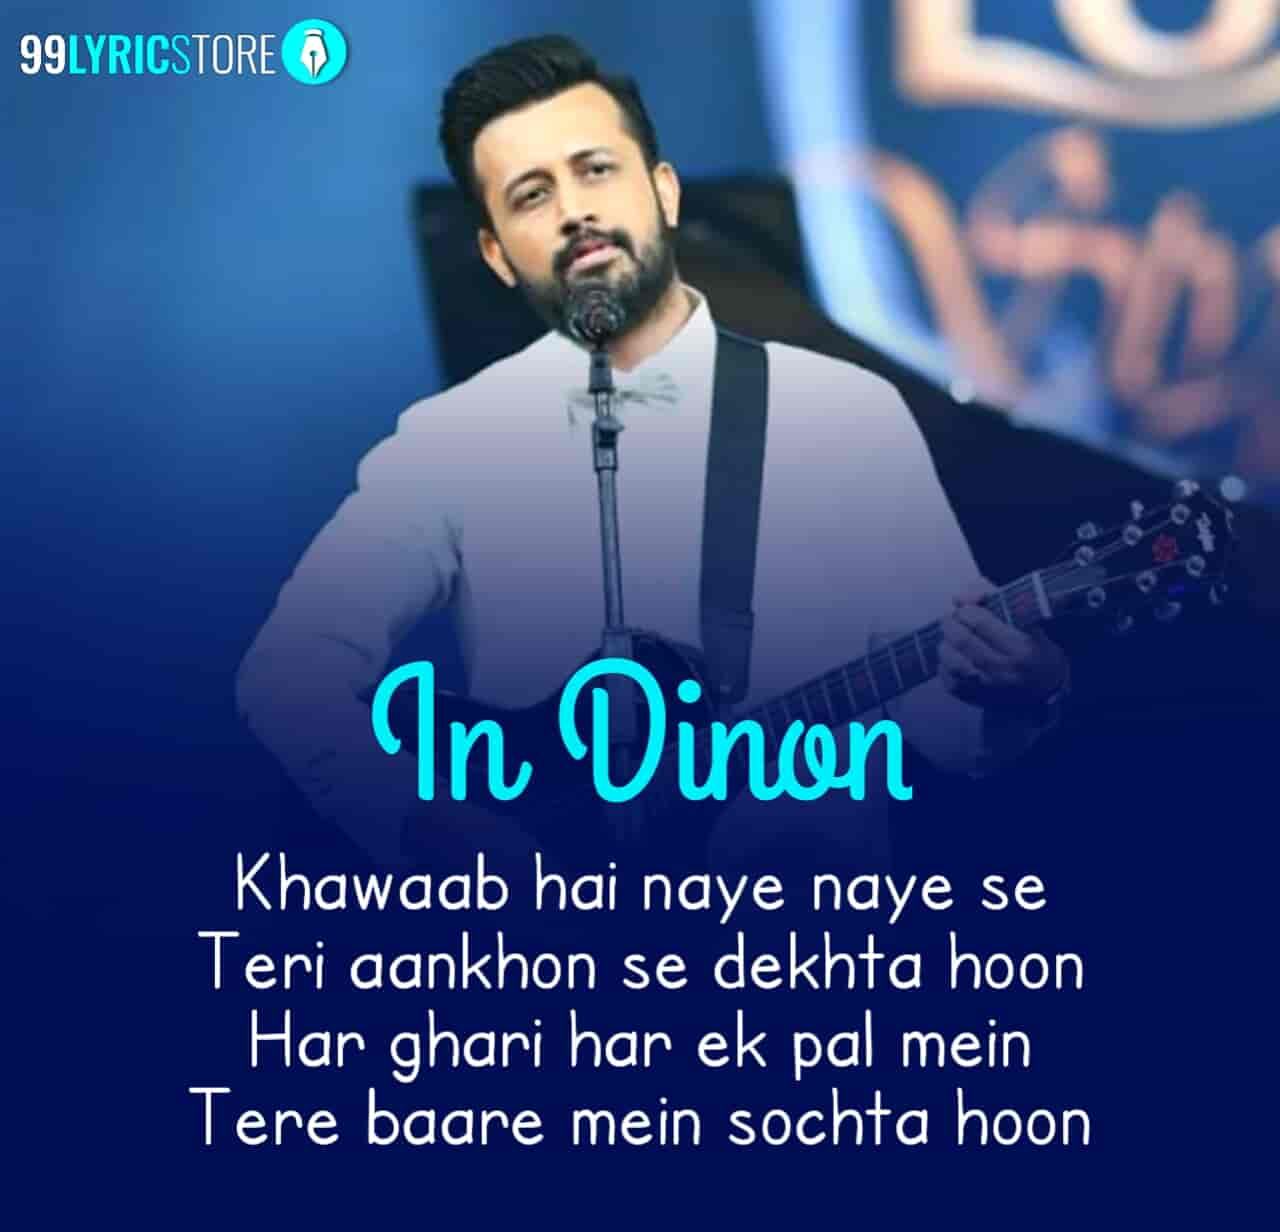 In dinon Song sung by Atif Aslam